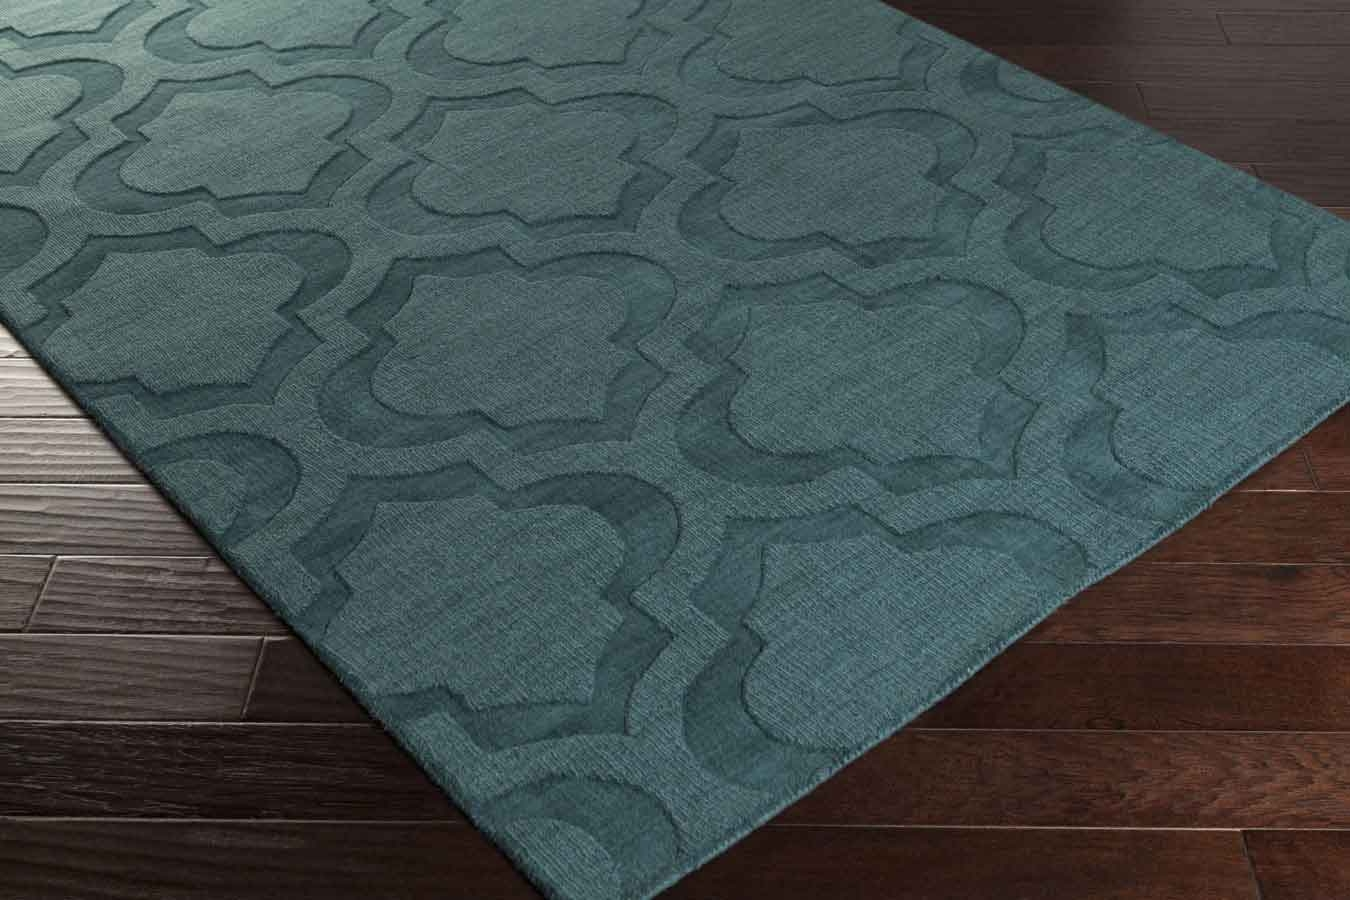 teal rugs artistic weavers central park kate awhp4010 teal area rug QZRUXEM